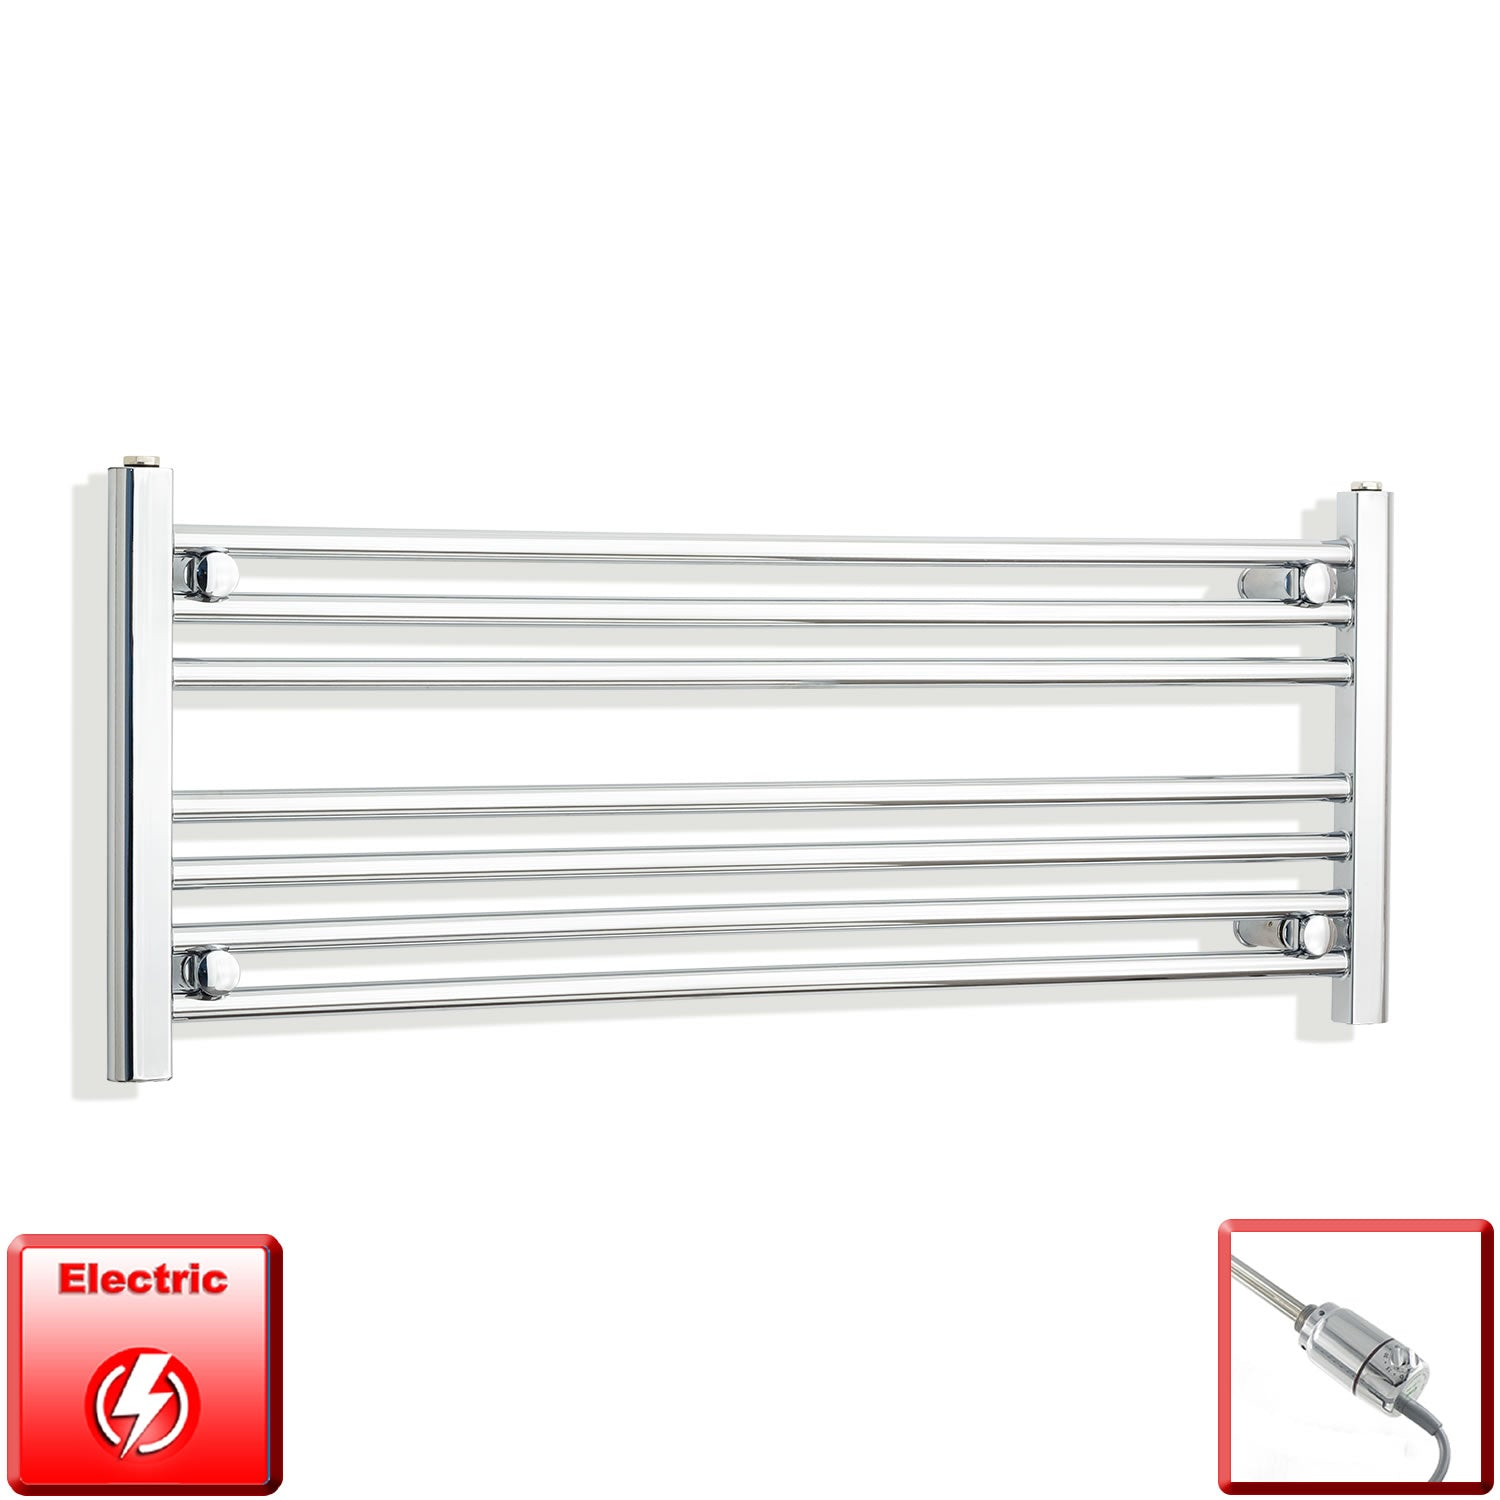 1200mm Wide 400mm High Pre-Filled Chrome Electric Towel Rail Radiator With Thermostatic GT Element